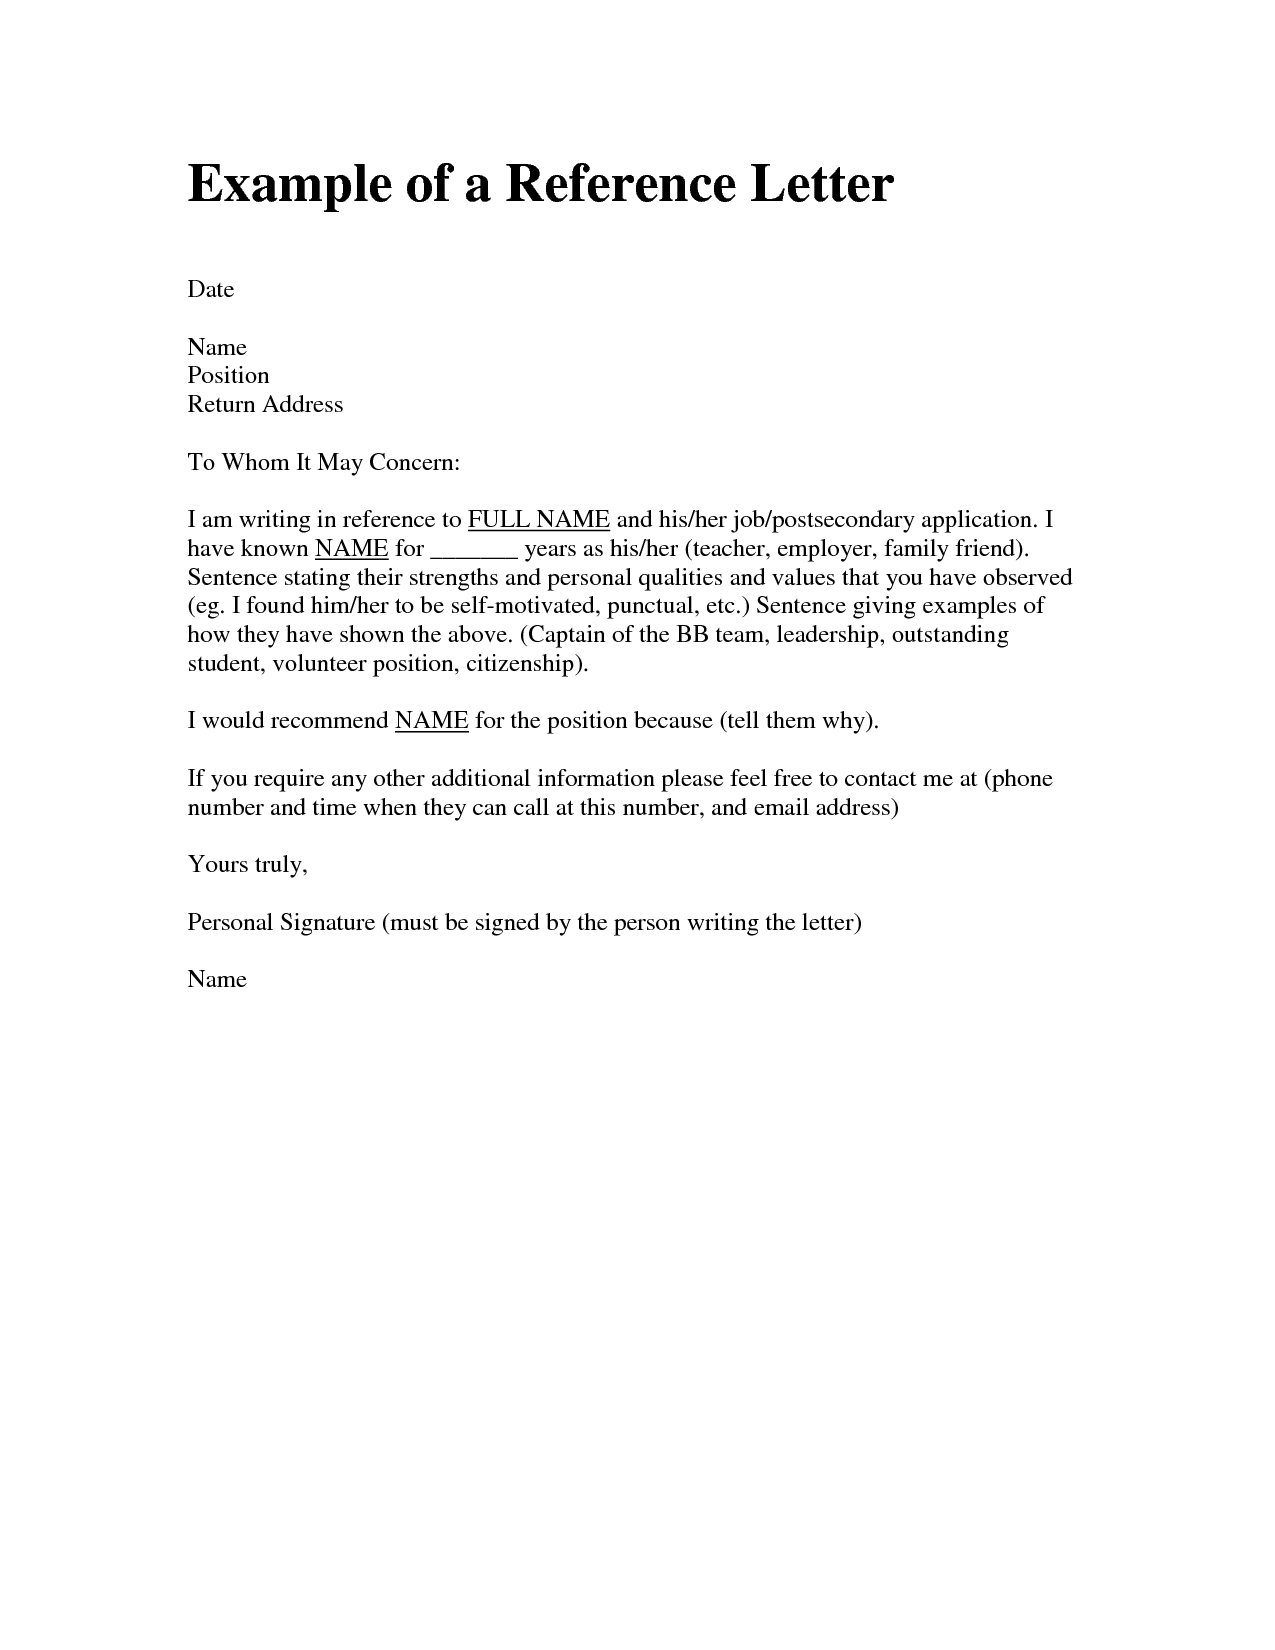 picture How to Write a Reference Letter